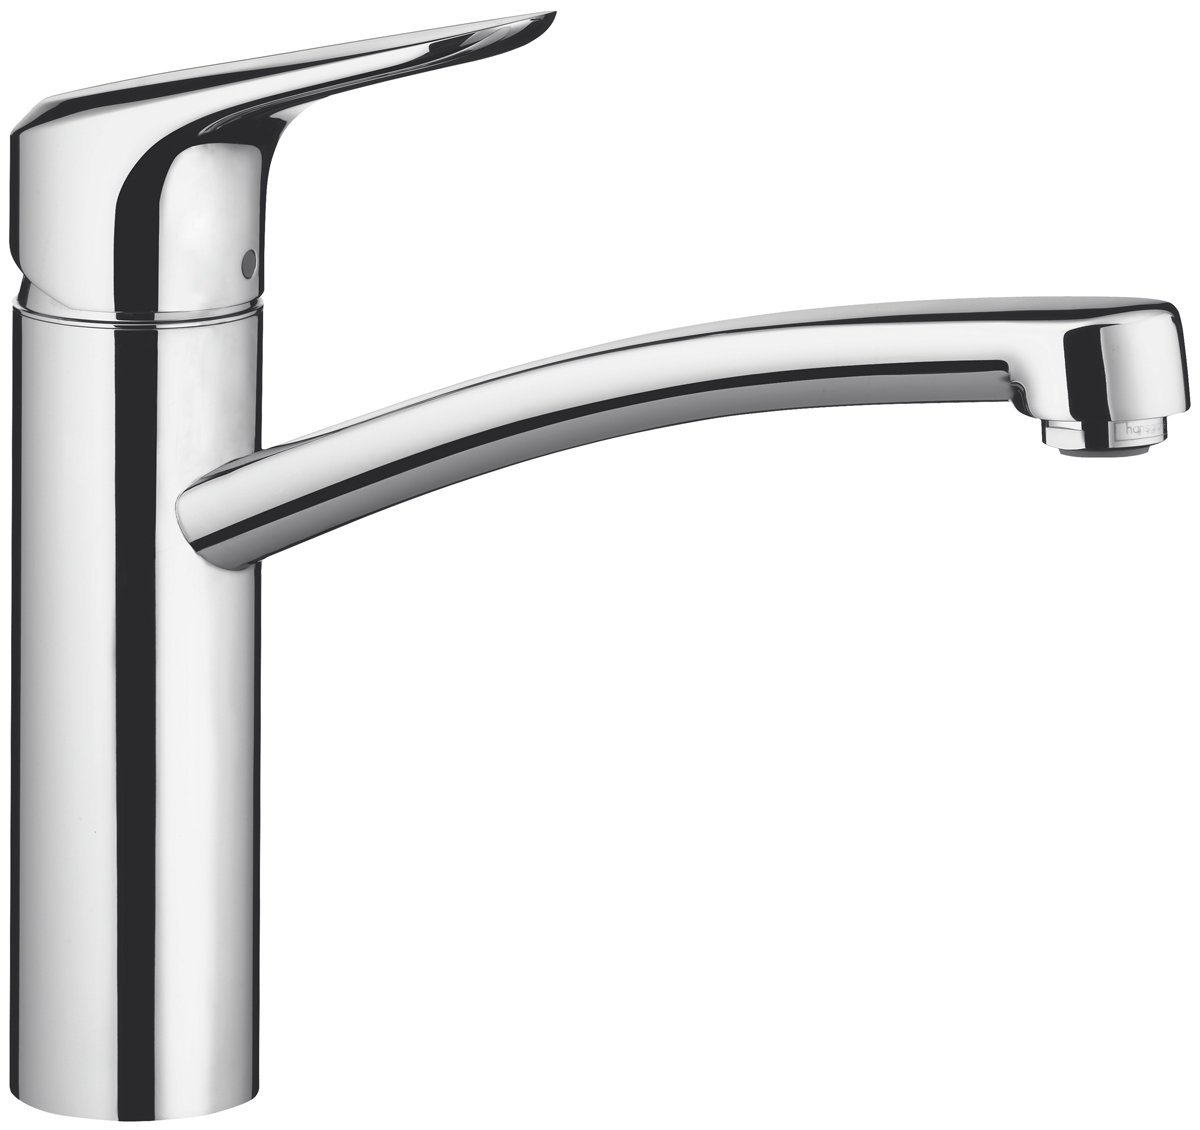 Hansgrohe 14815003 Ecos L Swivel Mixer | Appliances Online